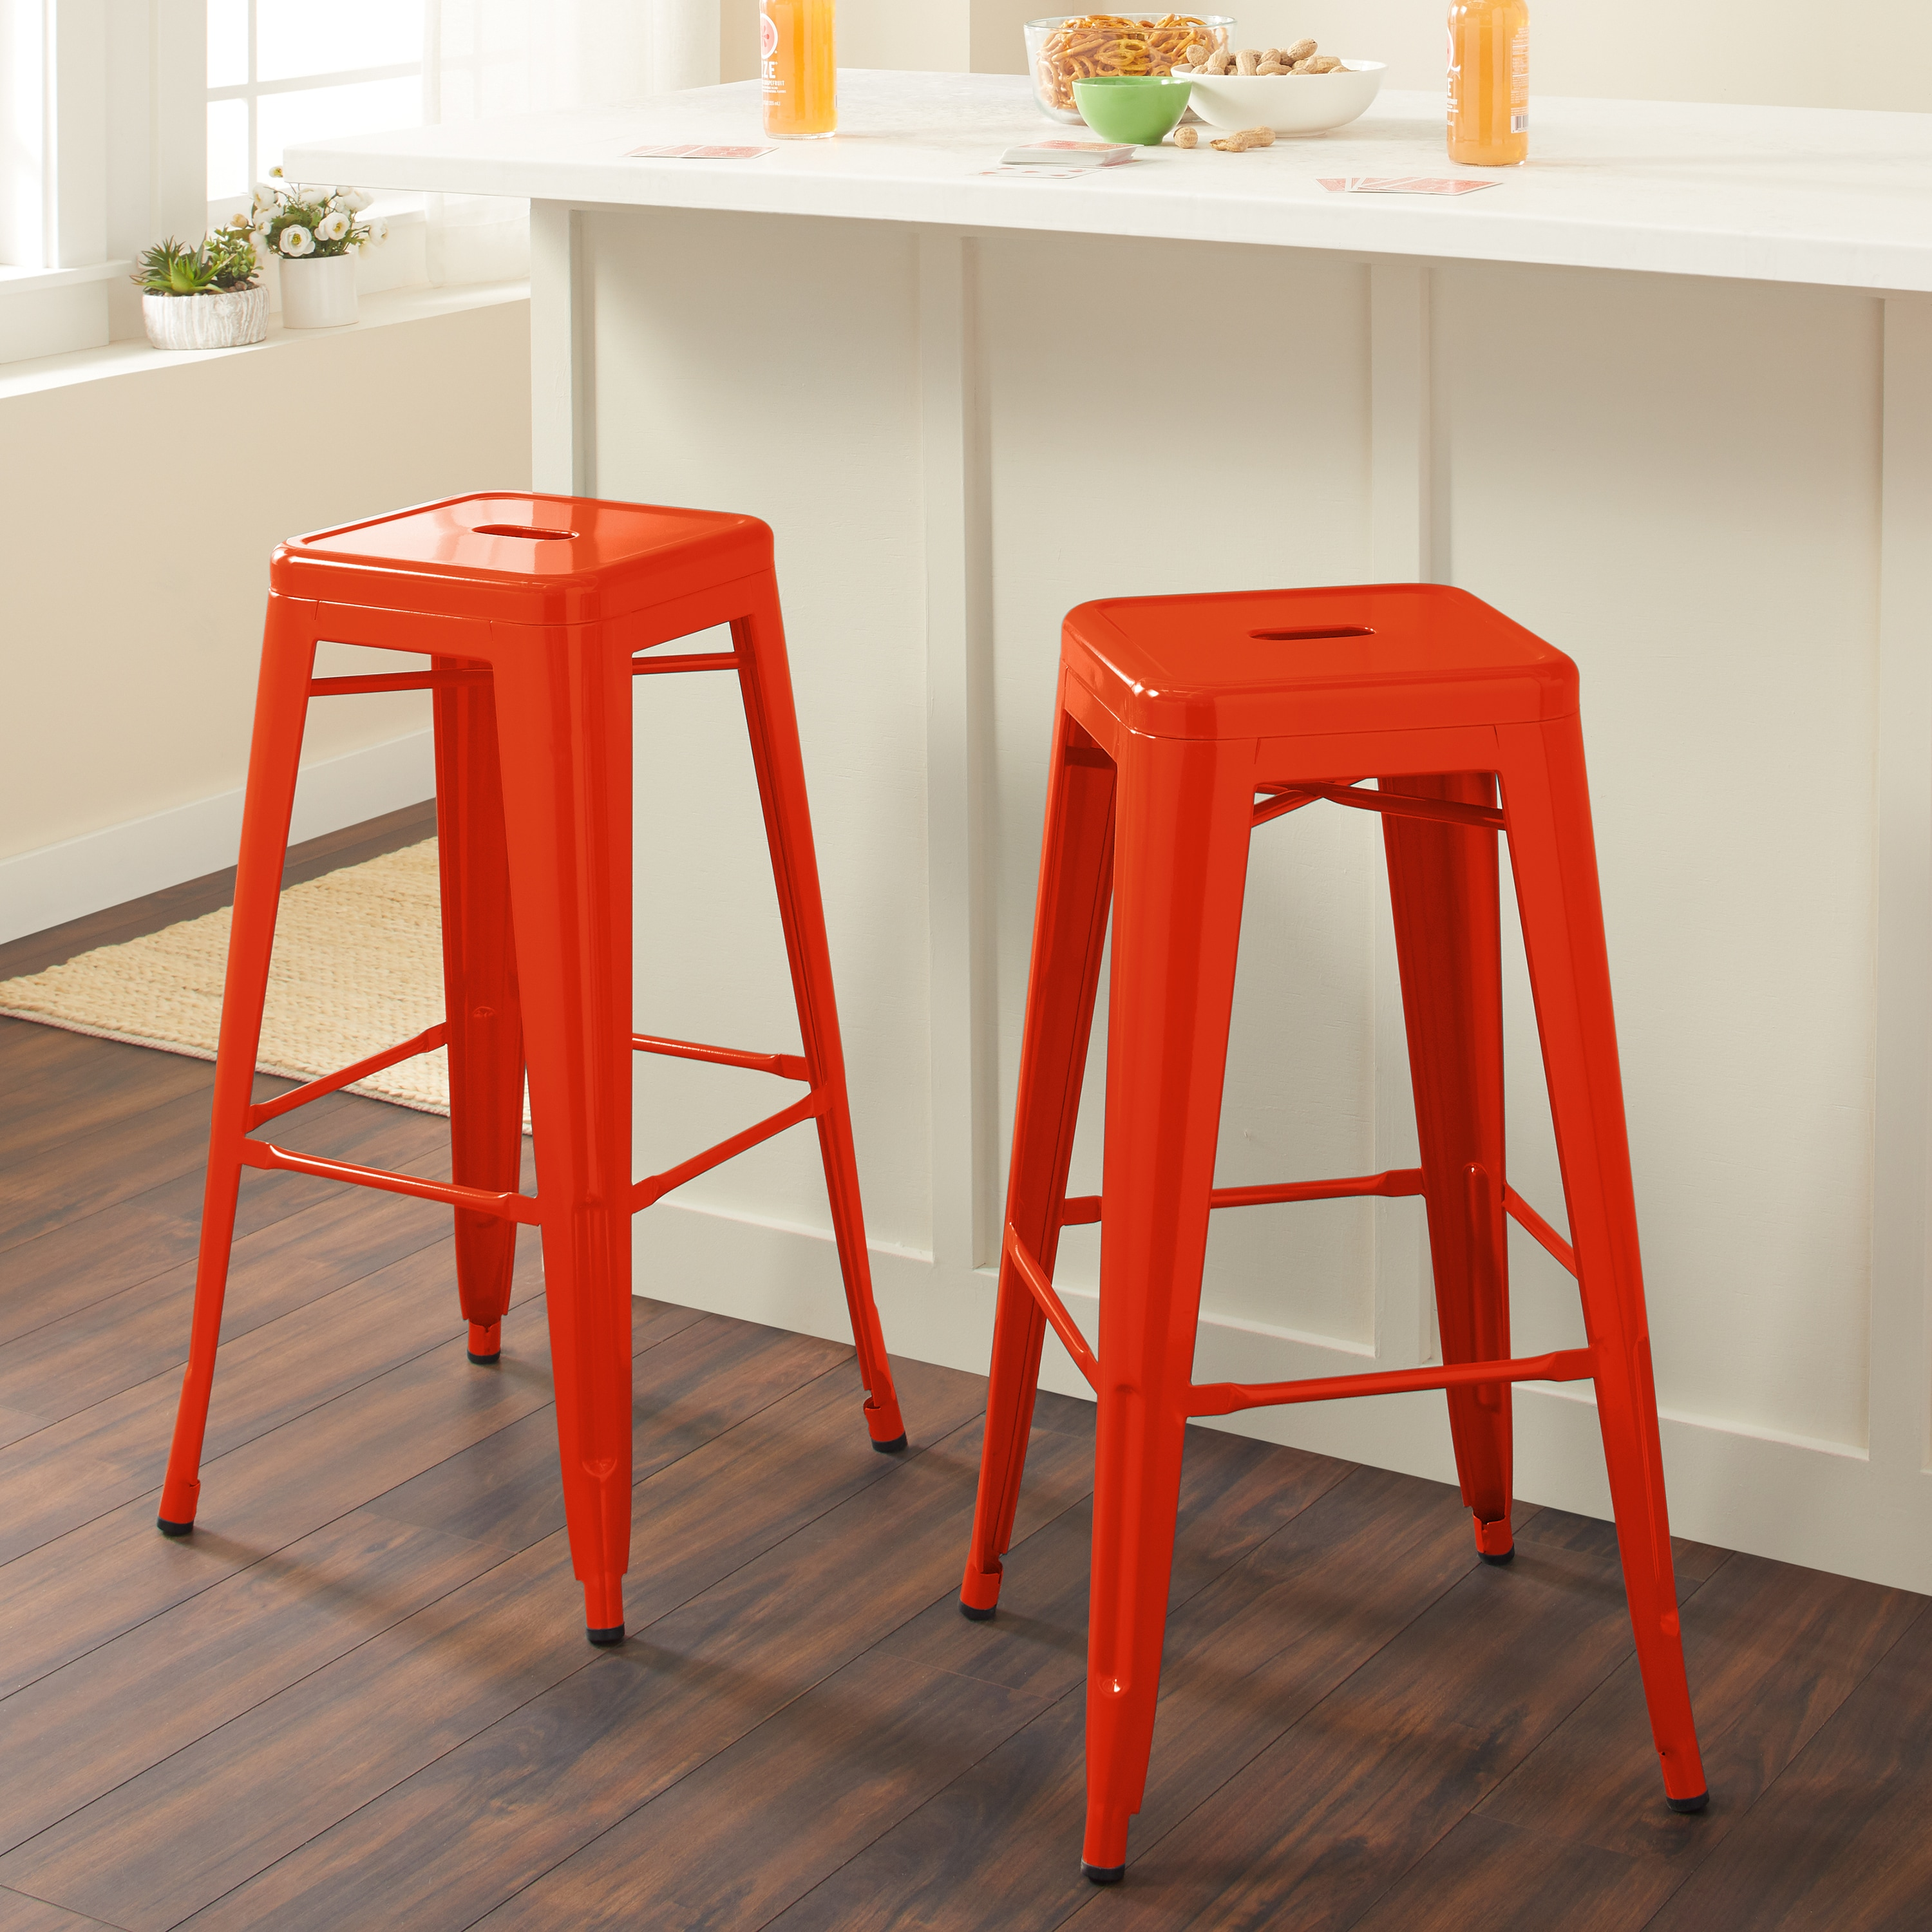 phantom fun used stools this acrylic enters it for of measuring sale on pin stool makes every clear fabulous set transitional mark a bar room and two